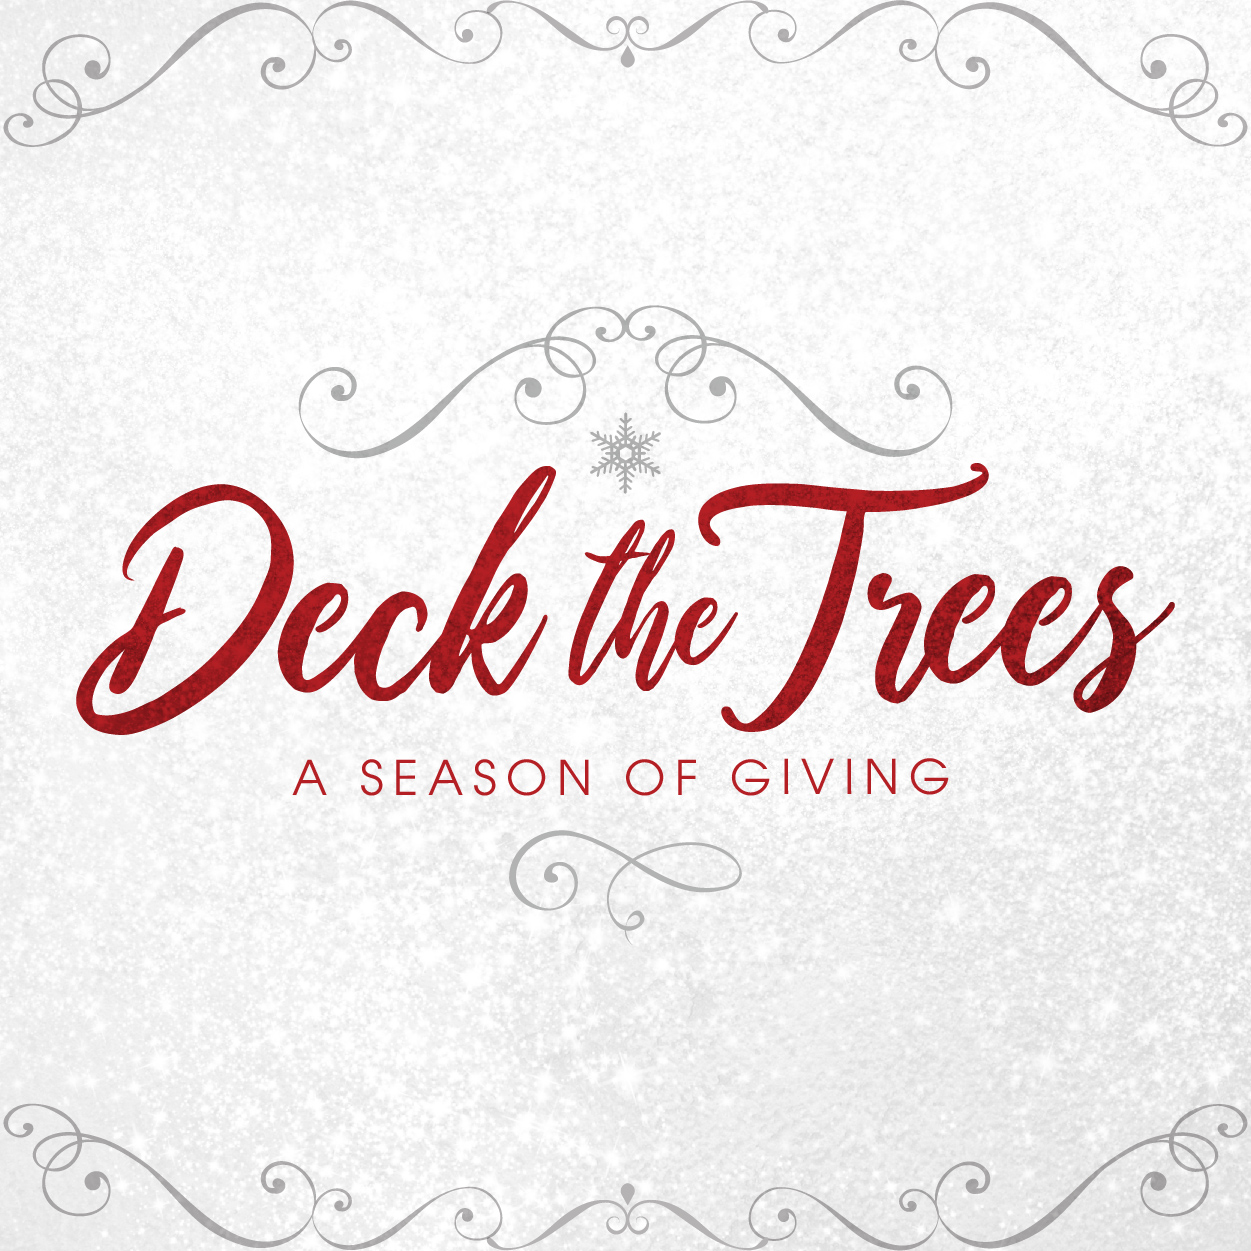 Deck the Trees